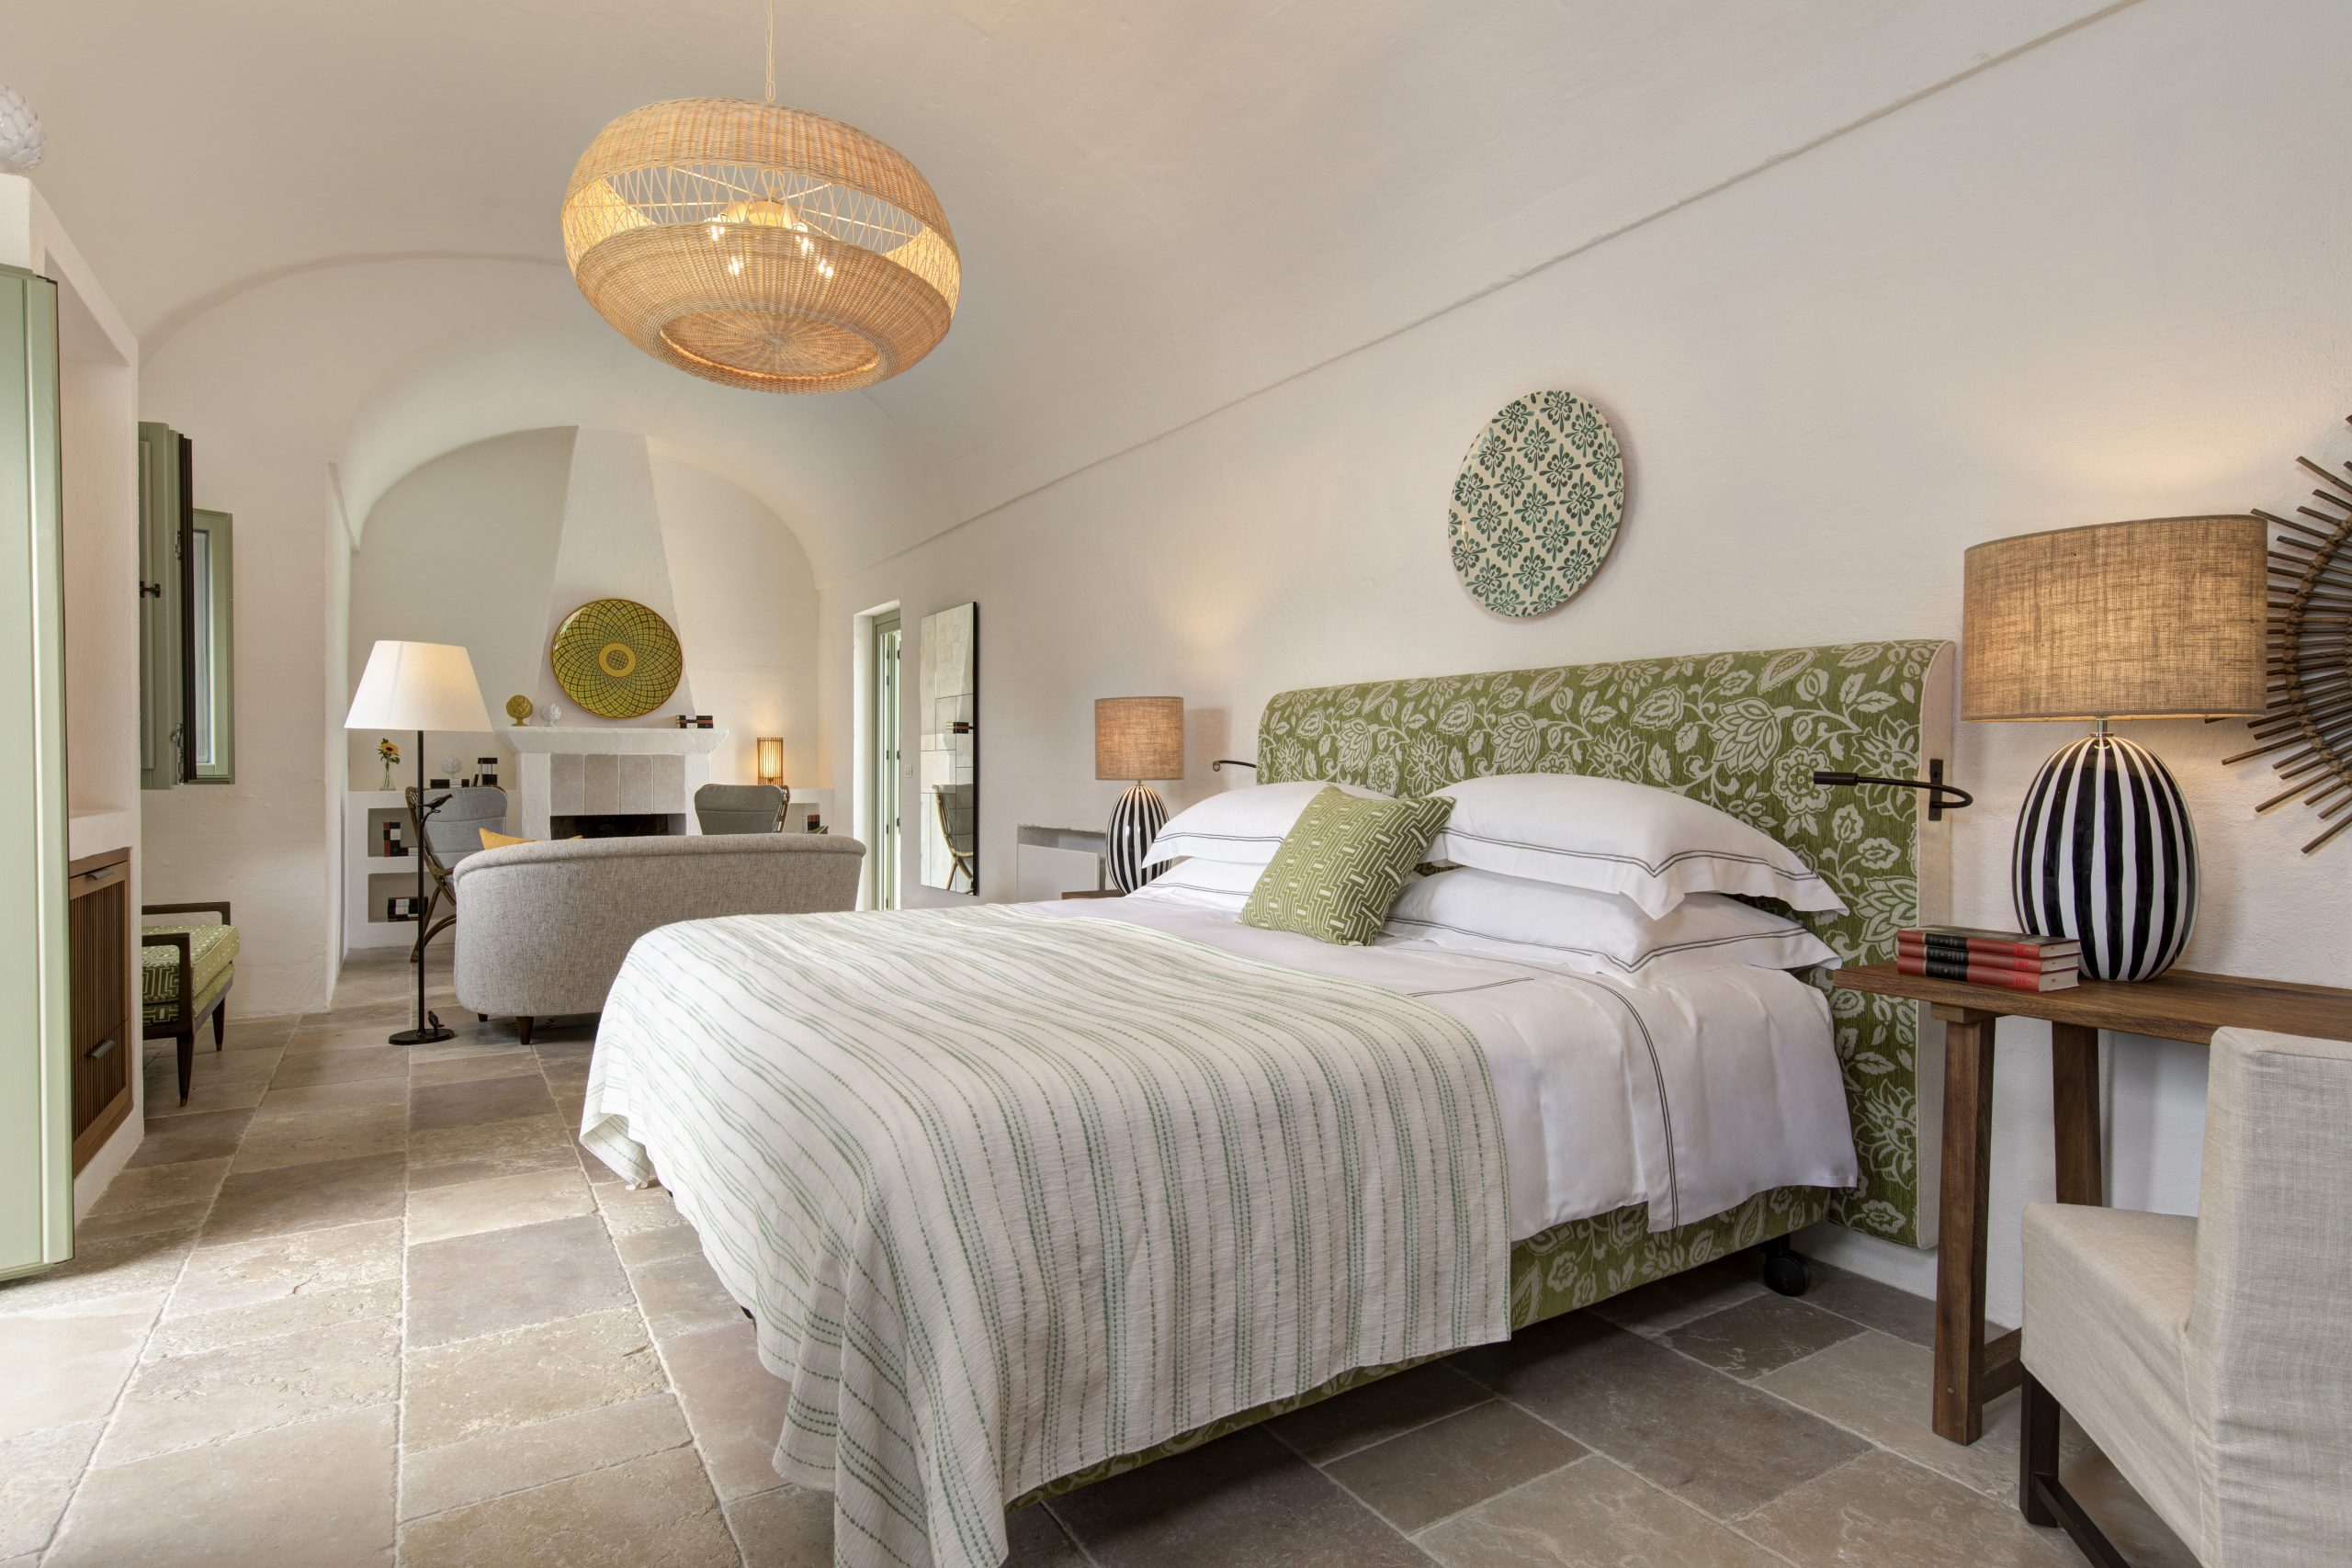 RFH Masseria Torre Maizza - Junior Suite 8200 JG May 19